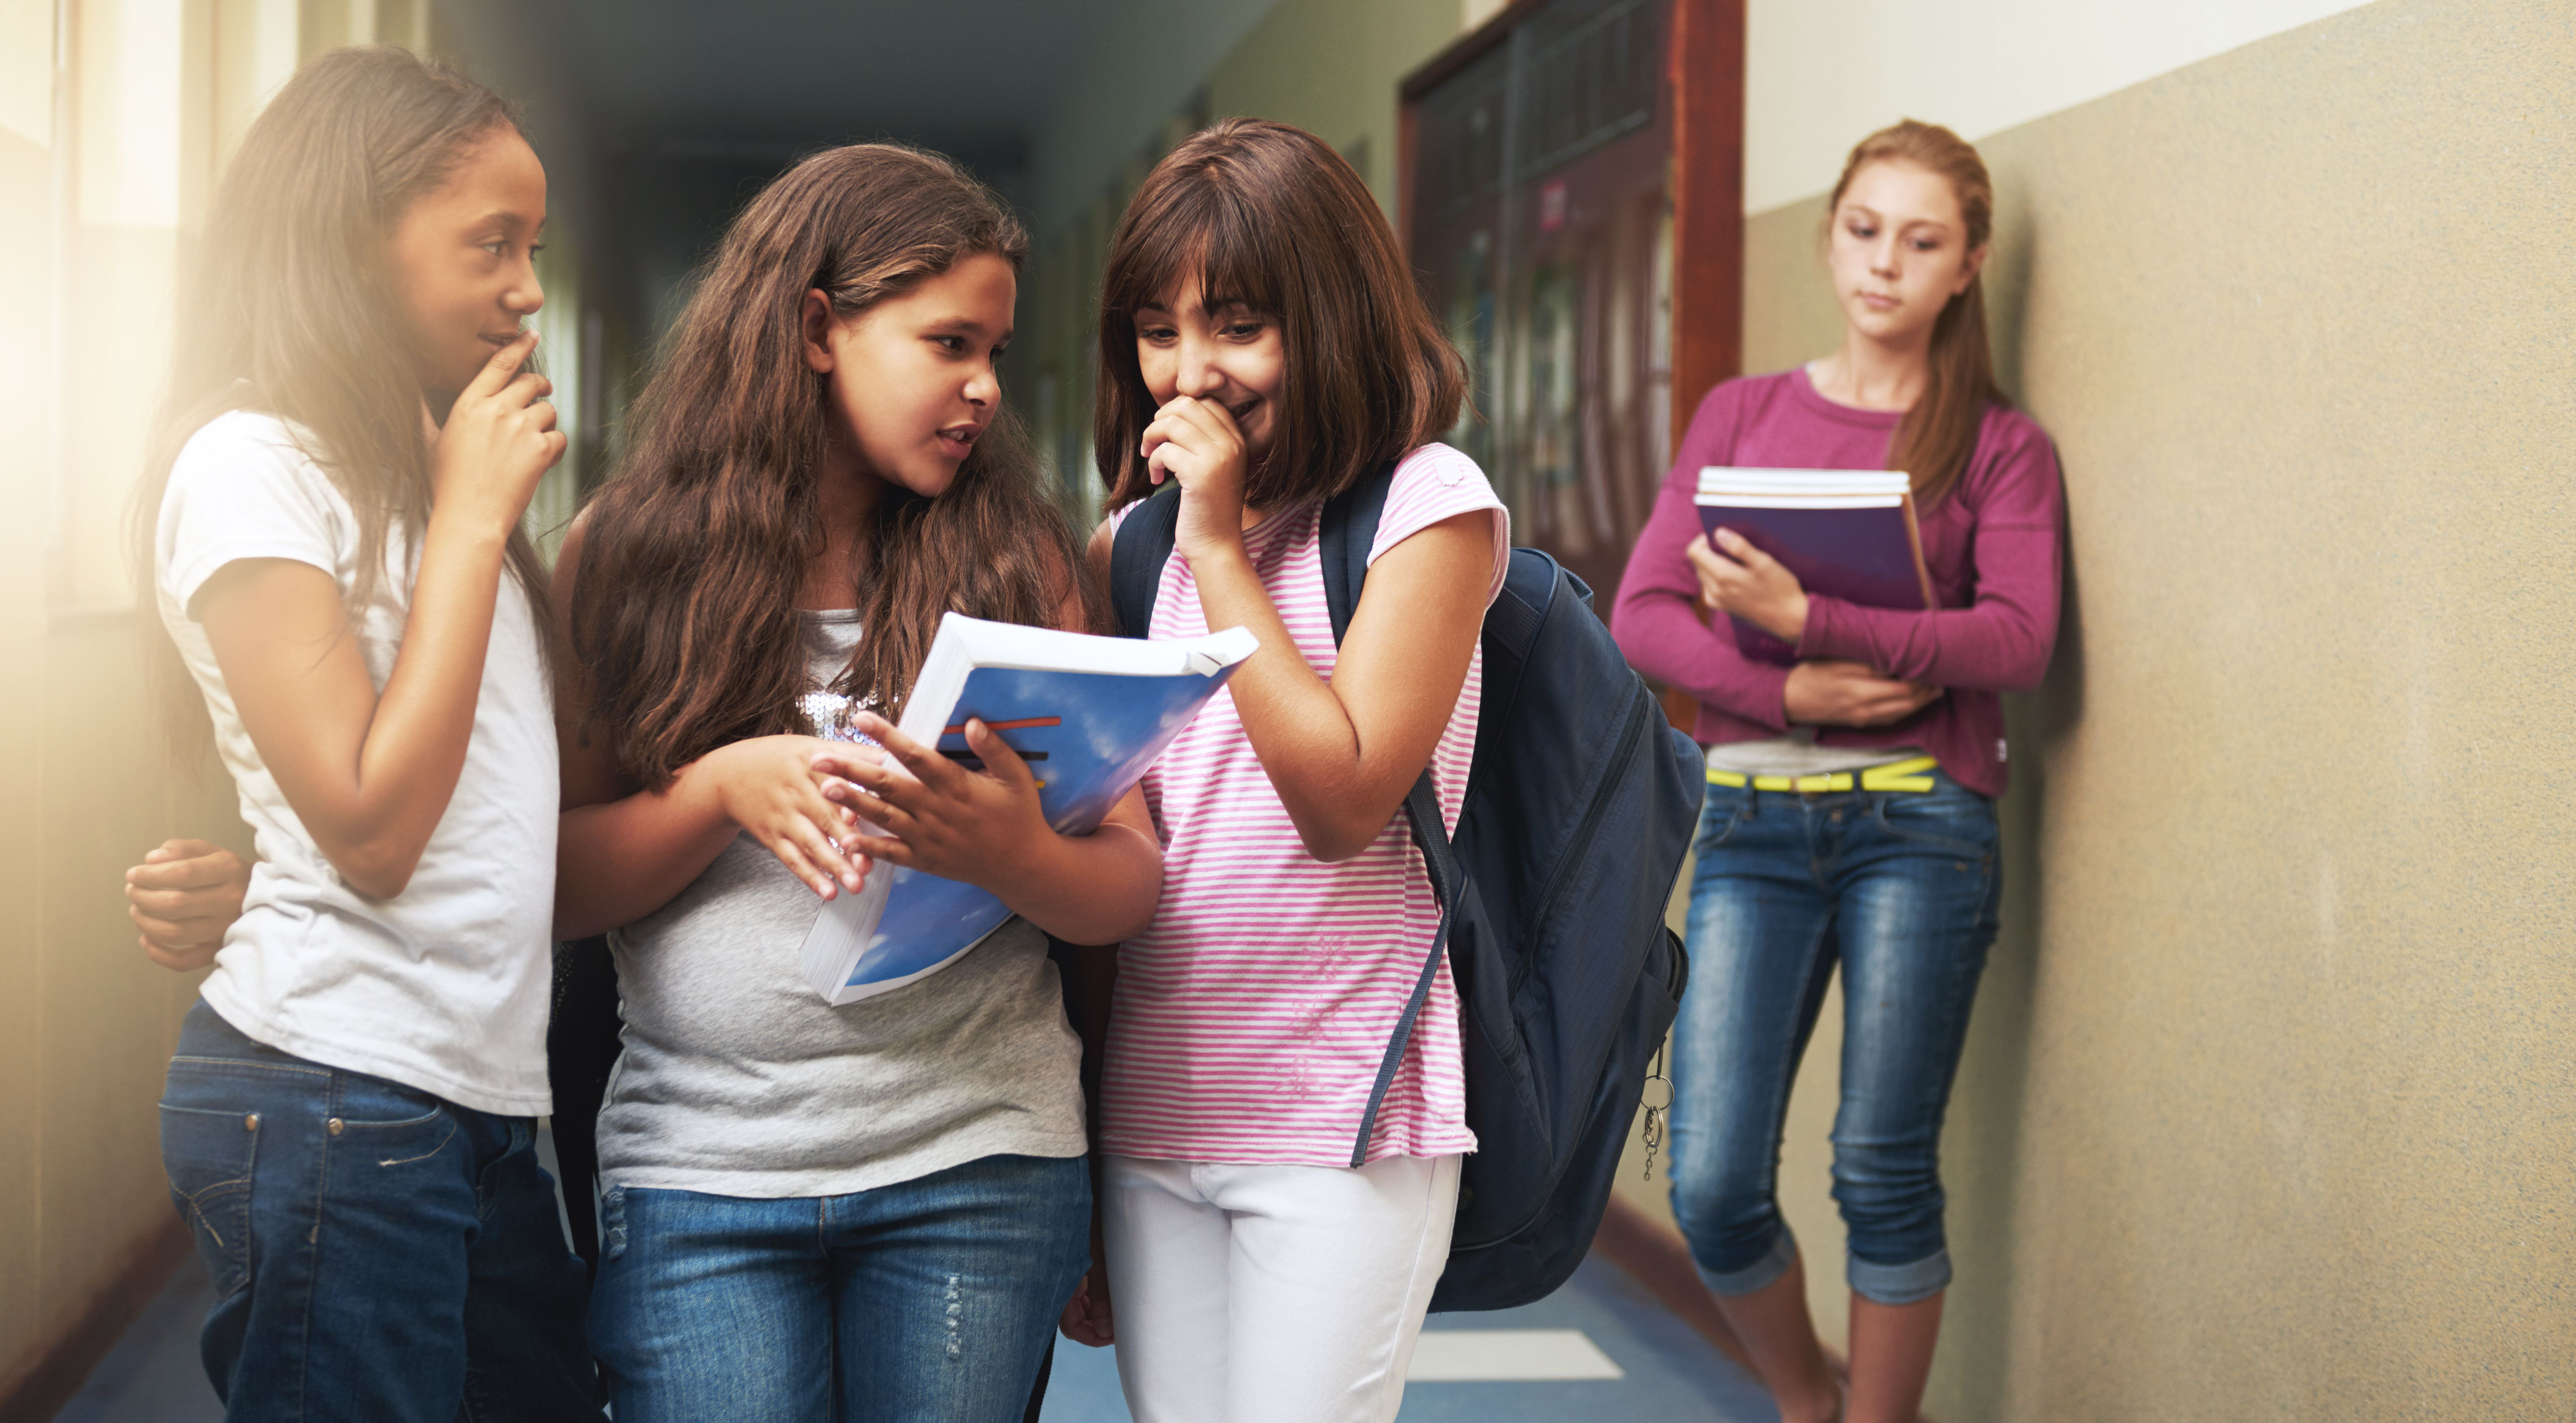 mean girls middle school Crying girl: [reading from paper] i wish we could all get along like we used to in  middle school i wish i could bake a cake filled with rainbows and smiles and.